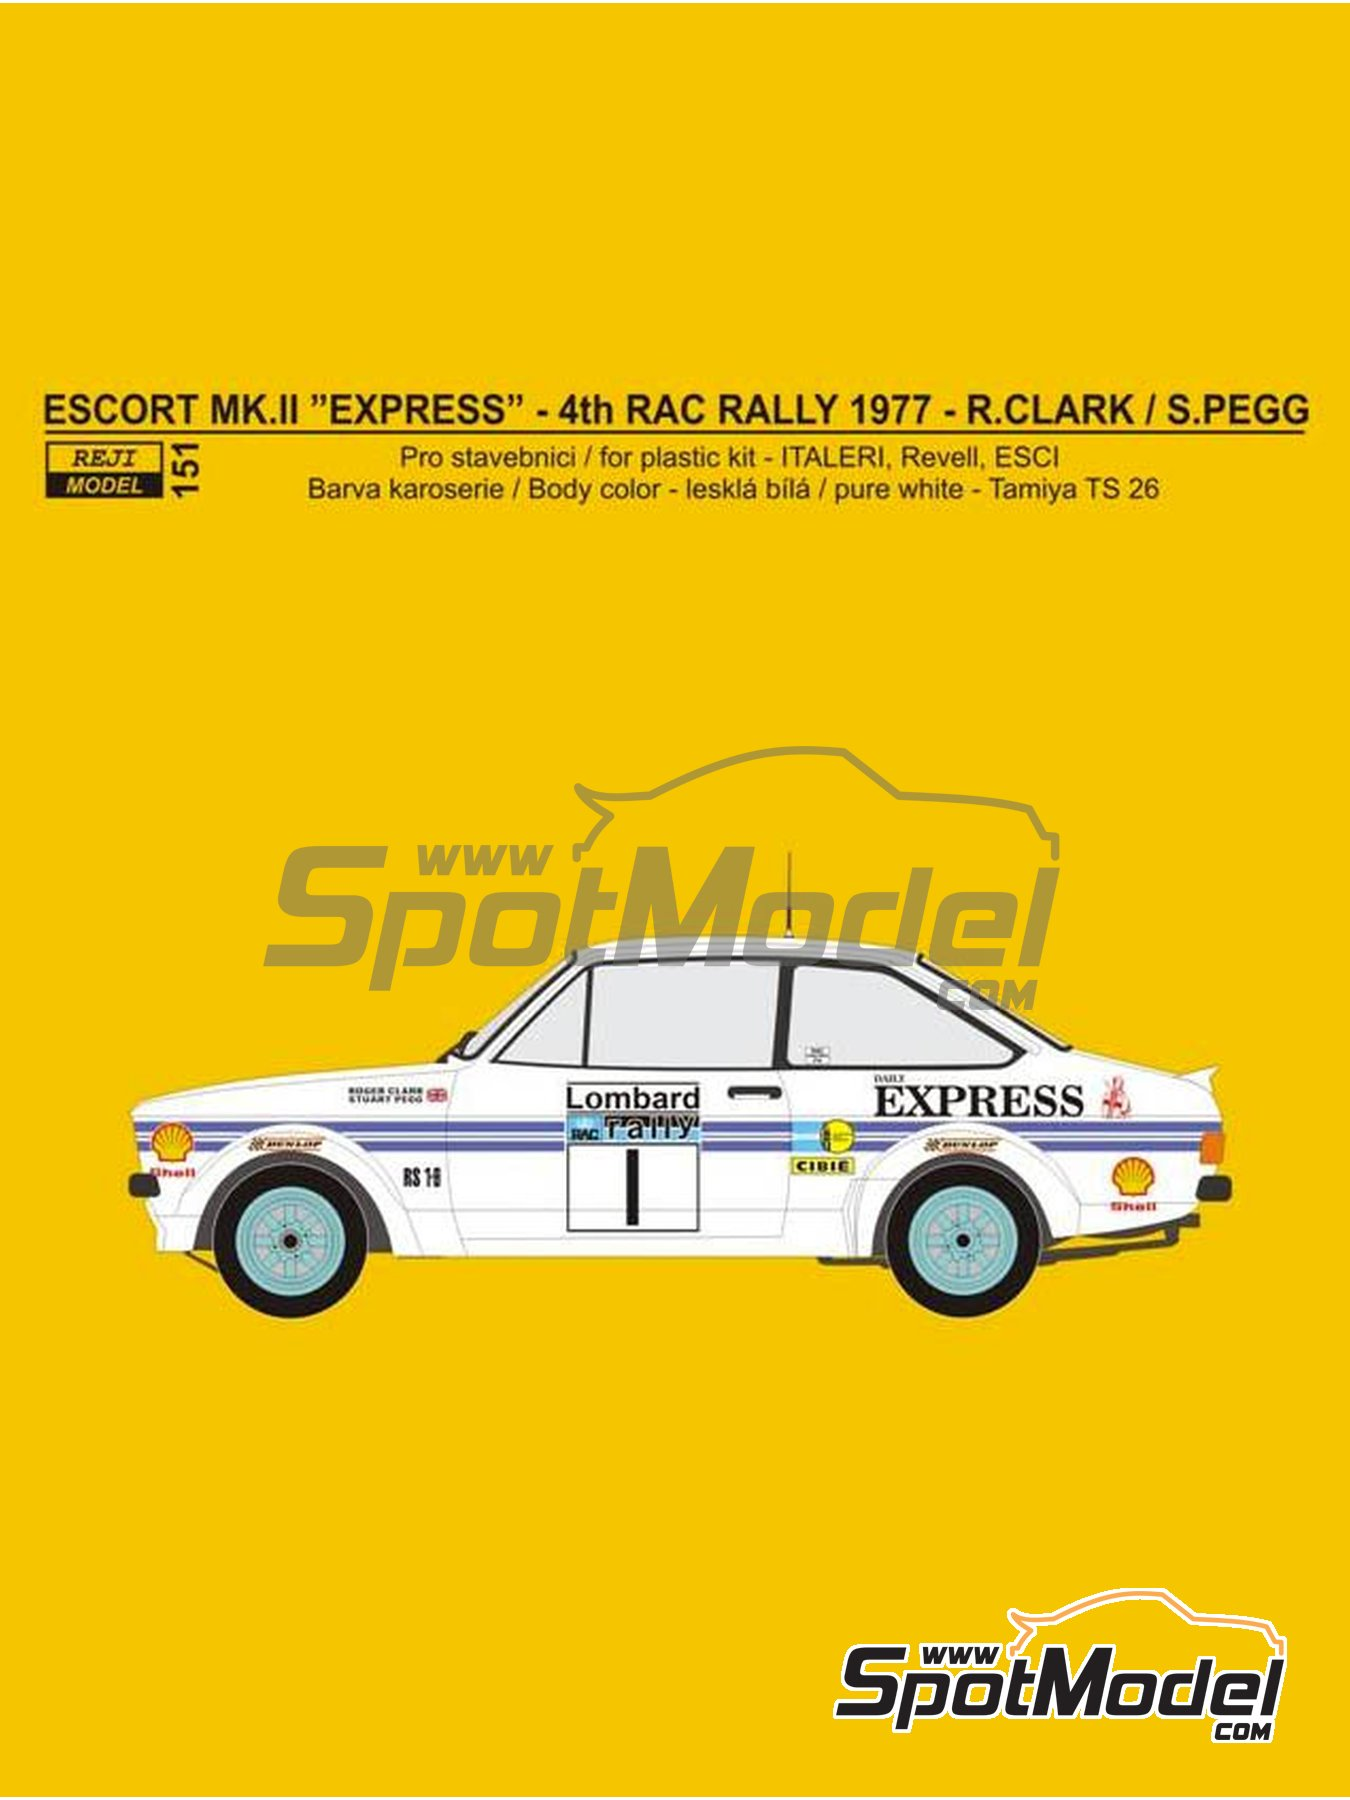 Ford Escort Mk. II Daily Express - Great Britain RAC Rally 1977 | Marking / livery in 1/24 scale manufactured by Reji Model (ref. REJI-151) image